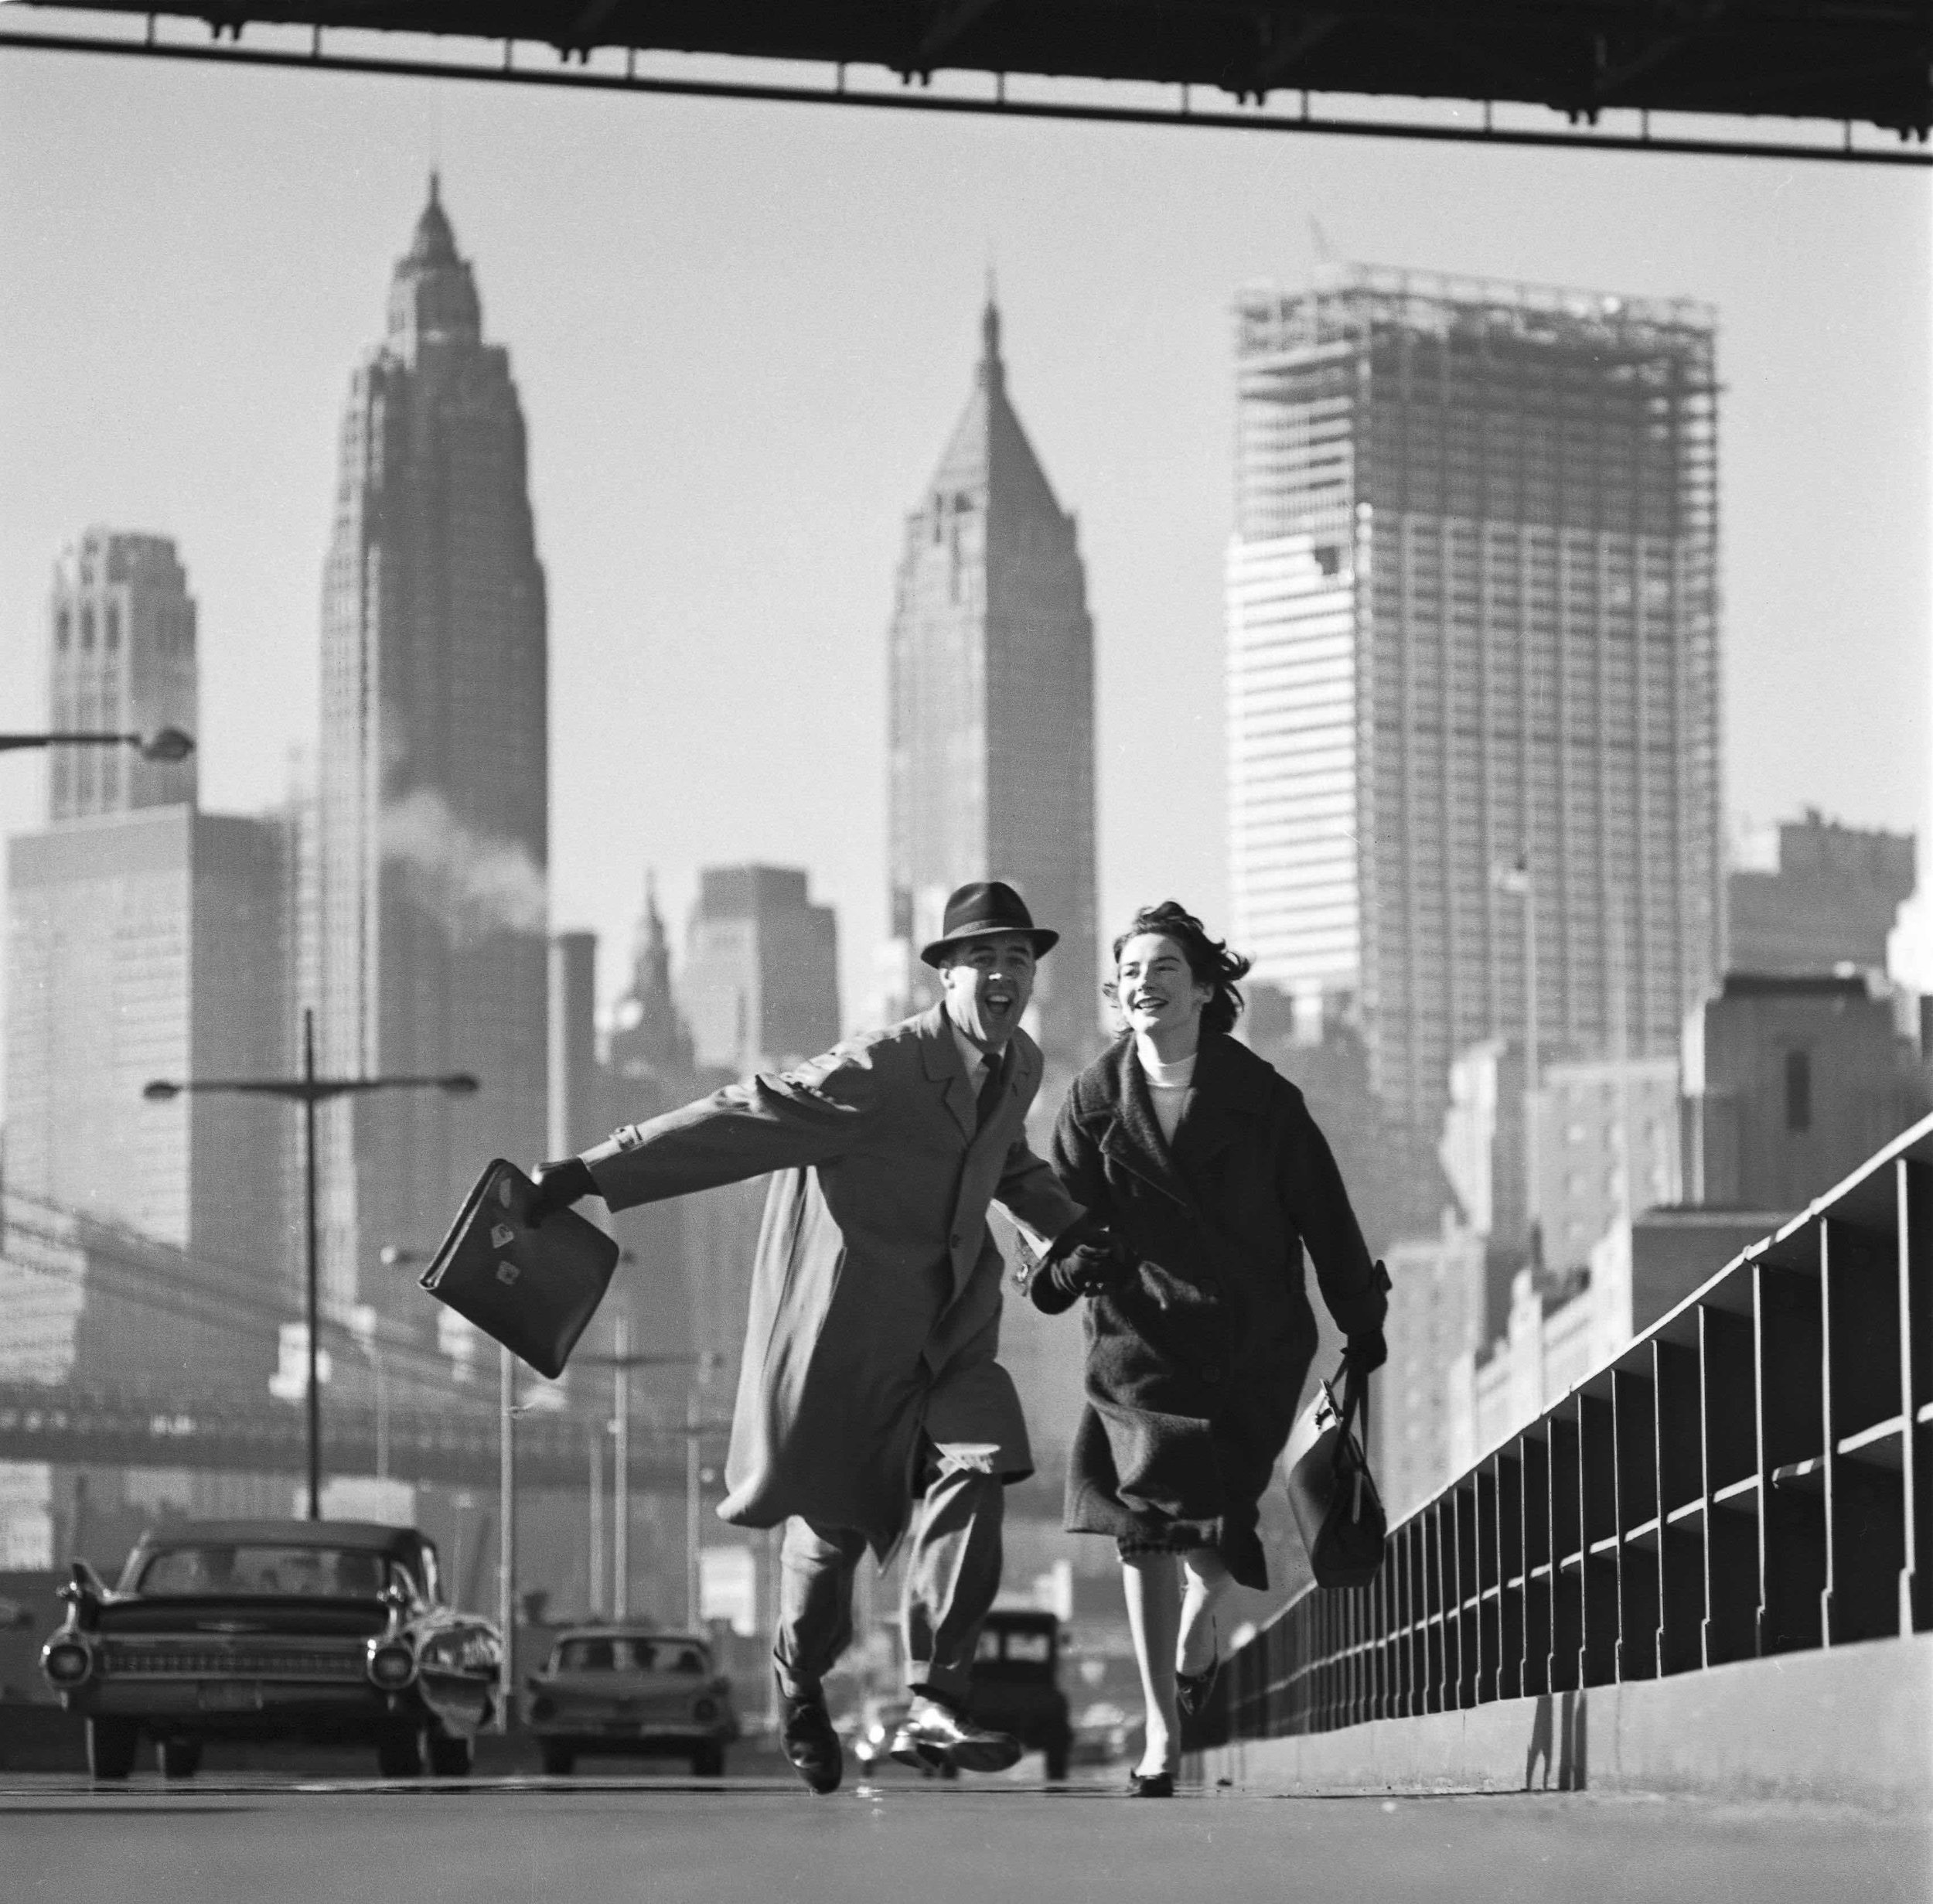 New York, NY, East River Drive, GO Magazine, early 1960s by Norman Parkinson